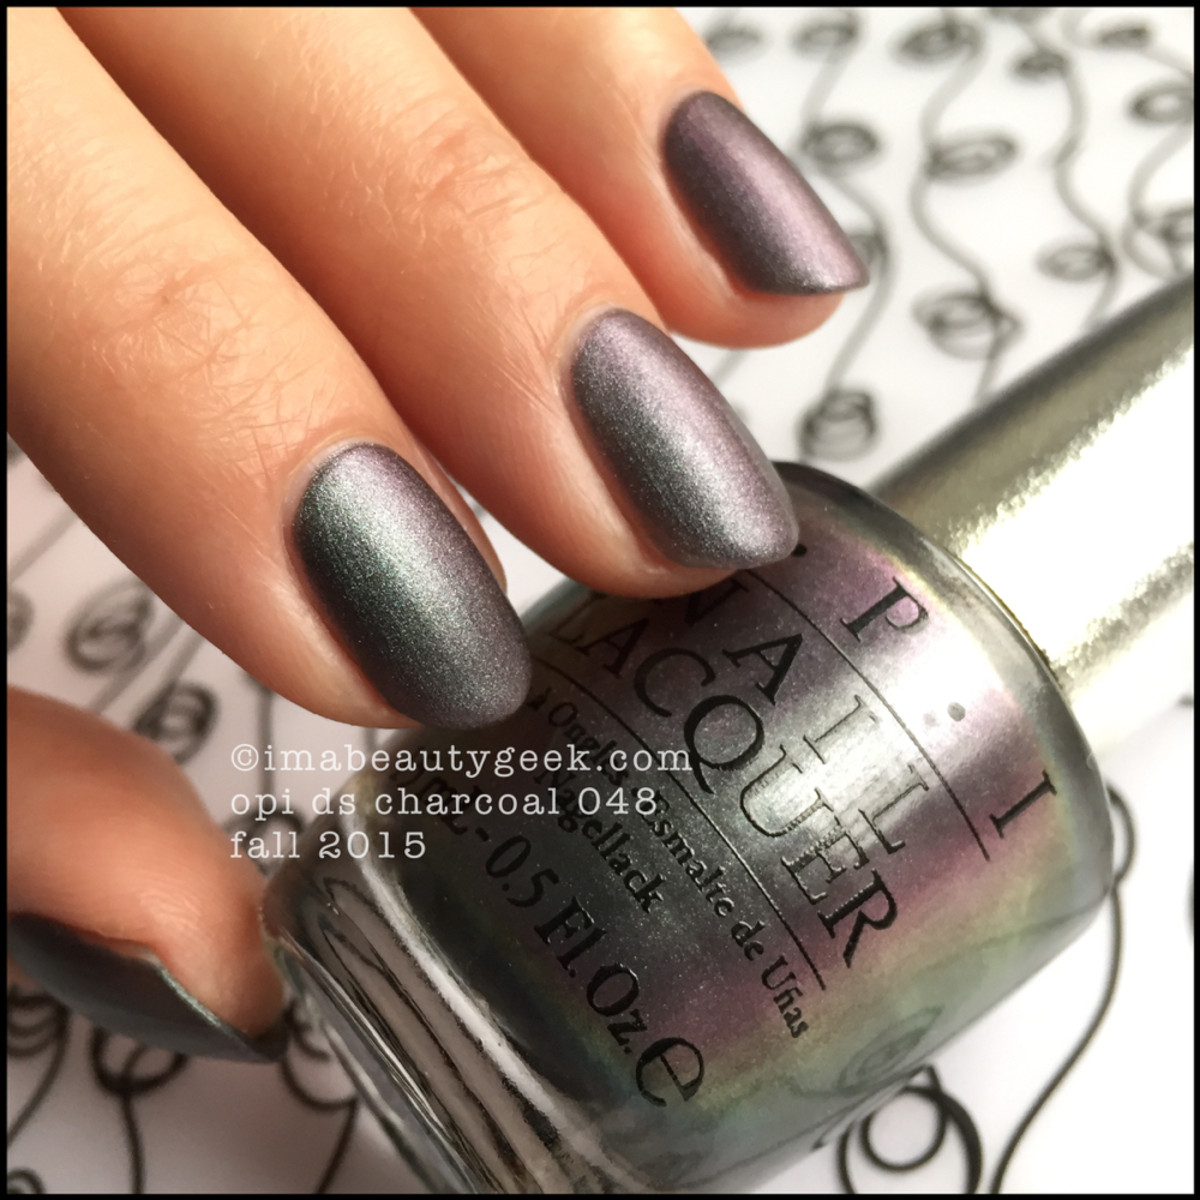 OPI Designer Series Fall 2015_OPI DS Charcoal 048_5